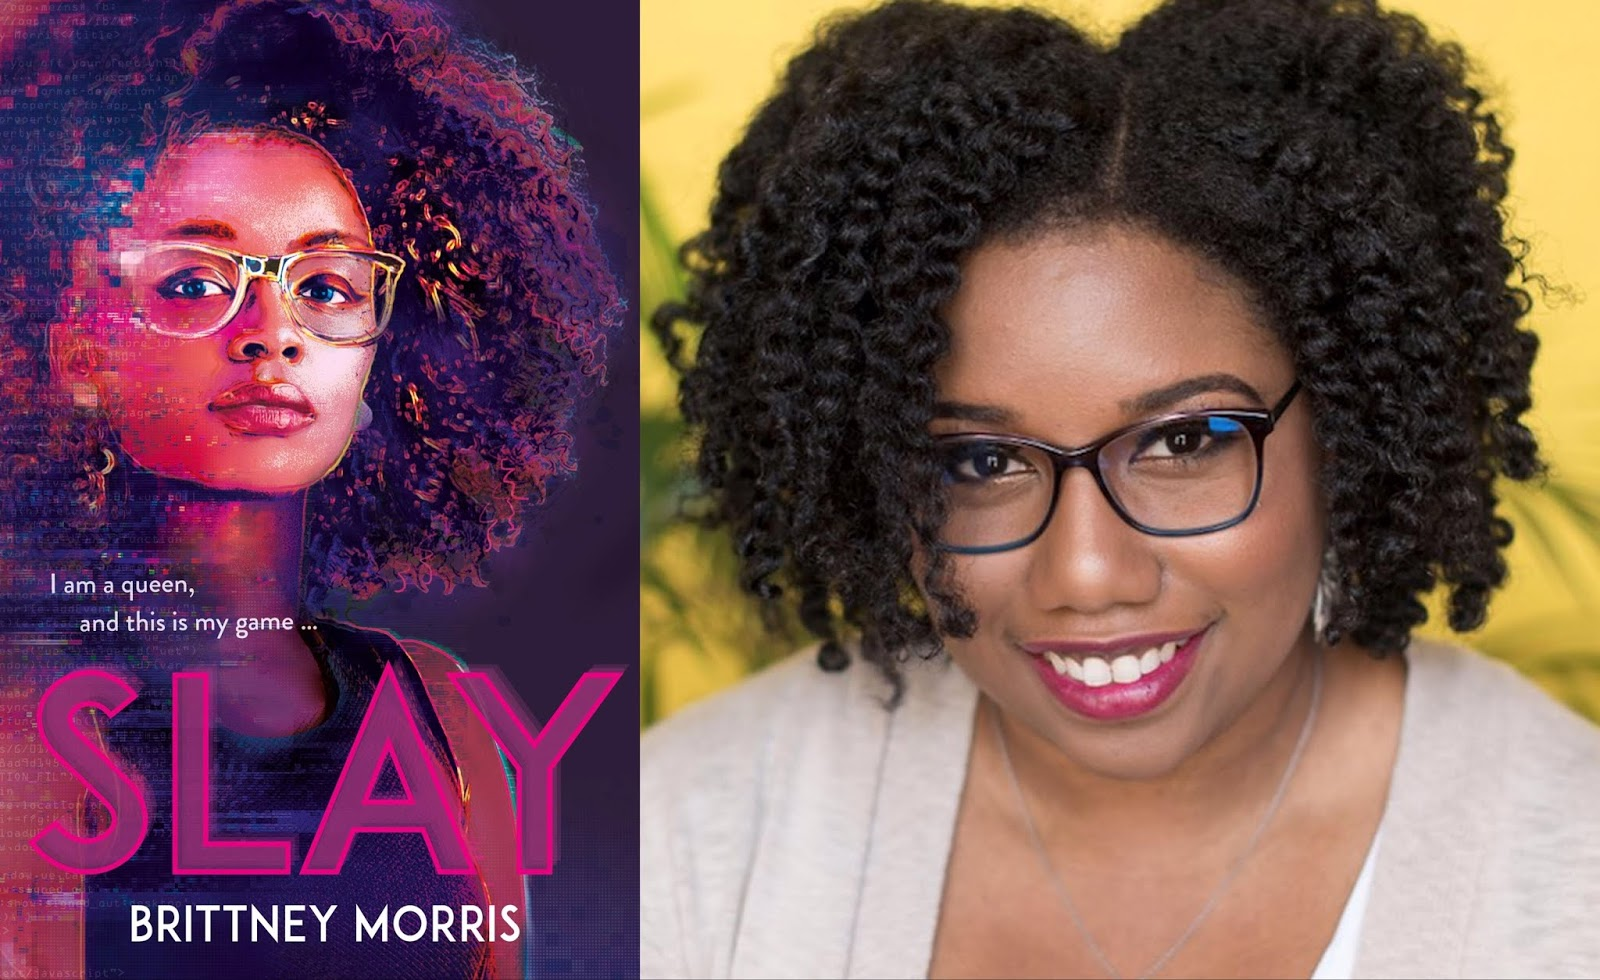 Slay by Brittney Morris | Superior Young Adult Fiction | Book Review